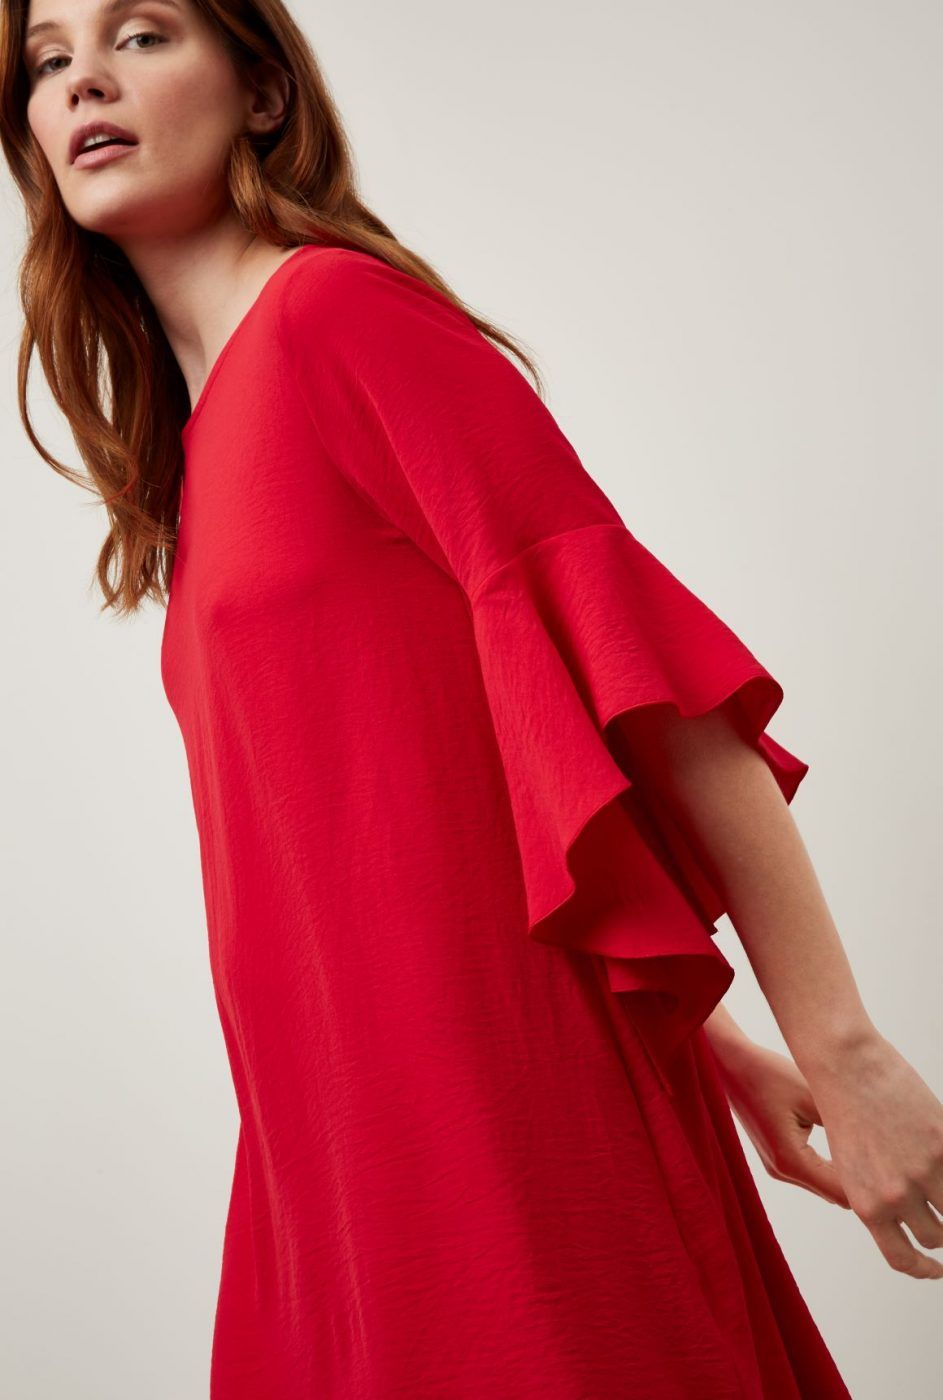 Red Dress from James Lakeland